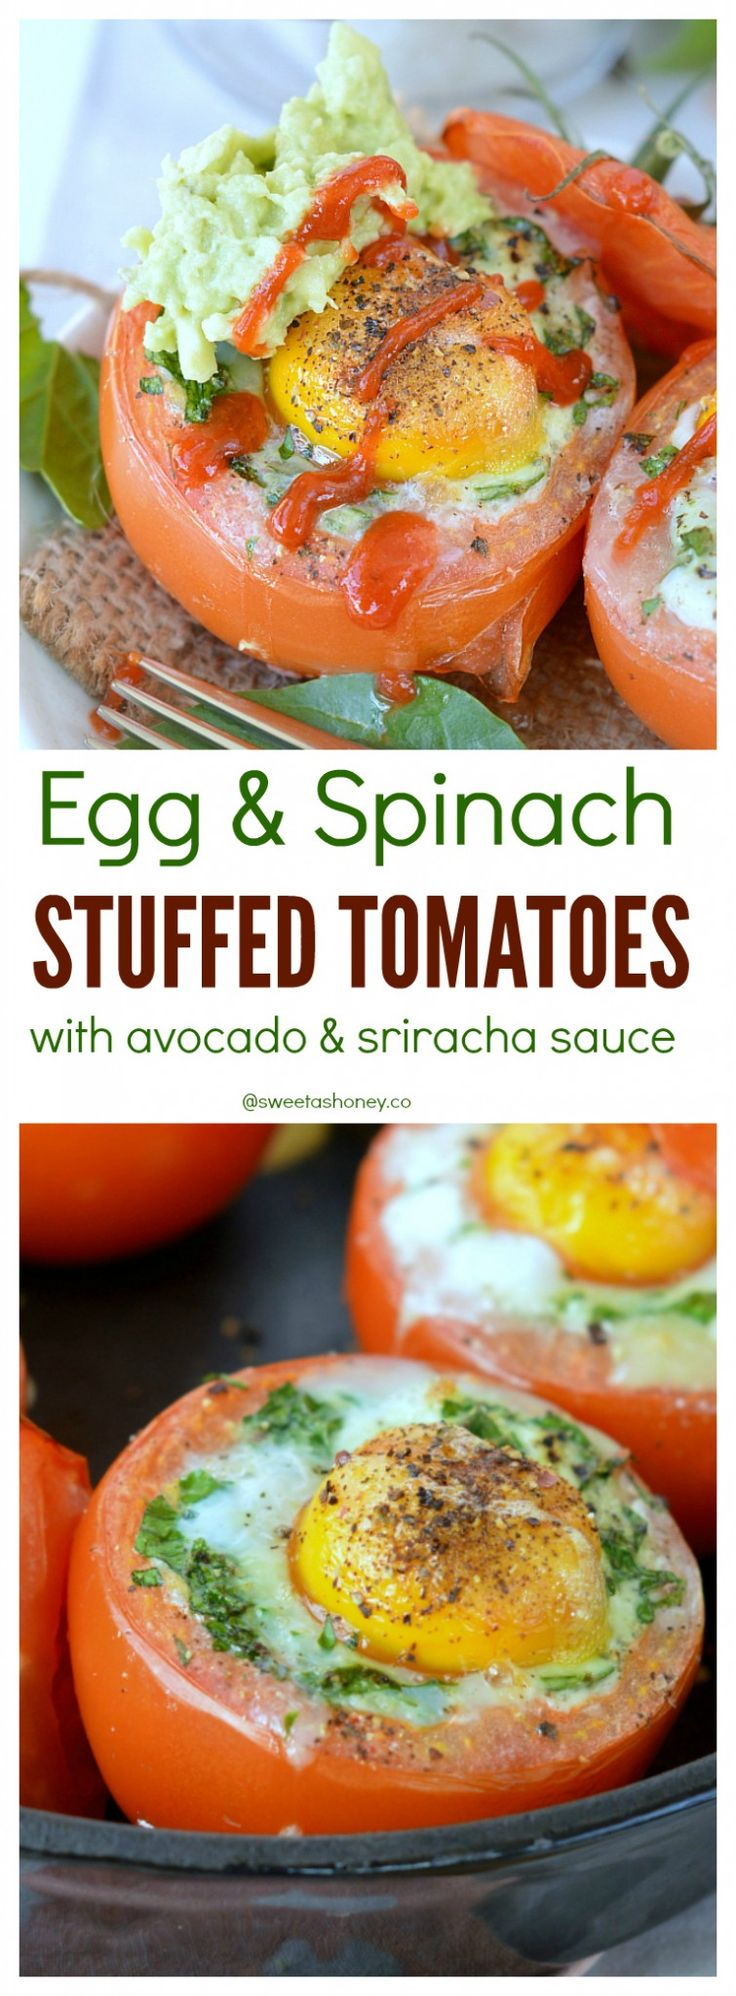 Stuffed tomatoes recipe healthy clean eating breakfast ideas.